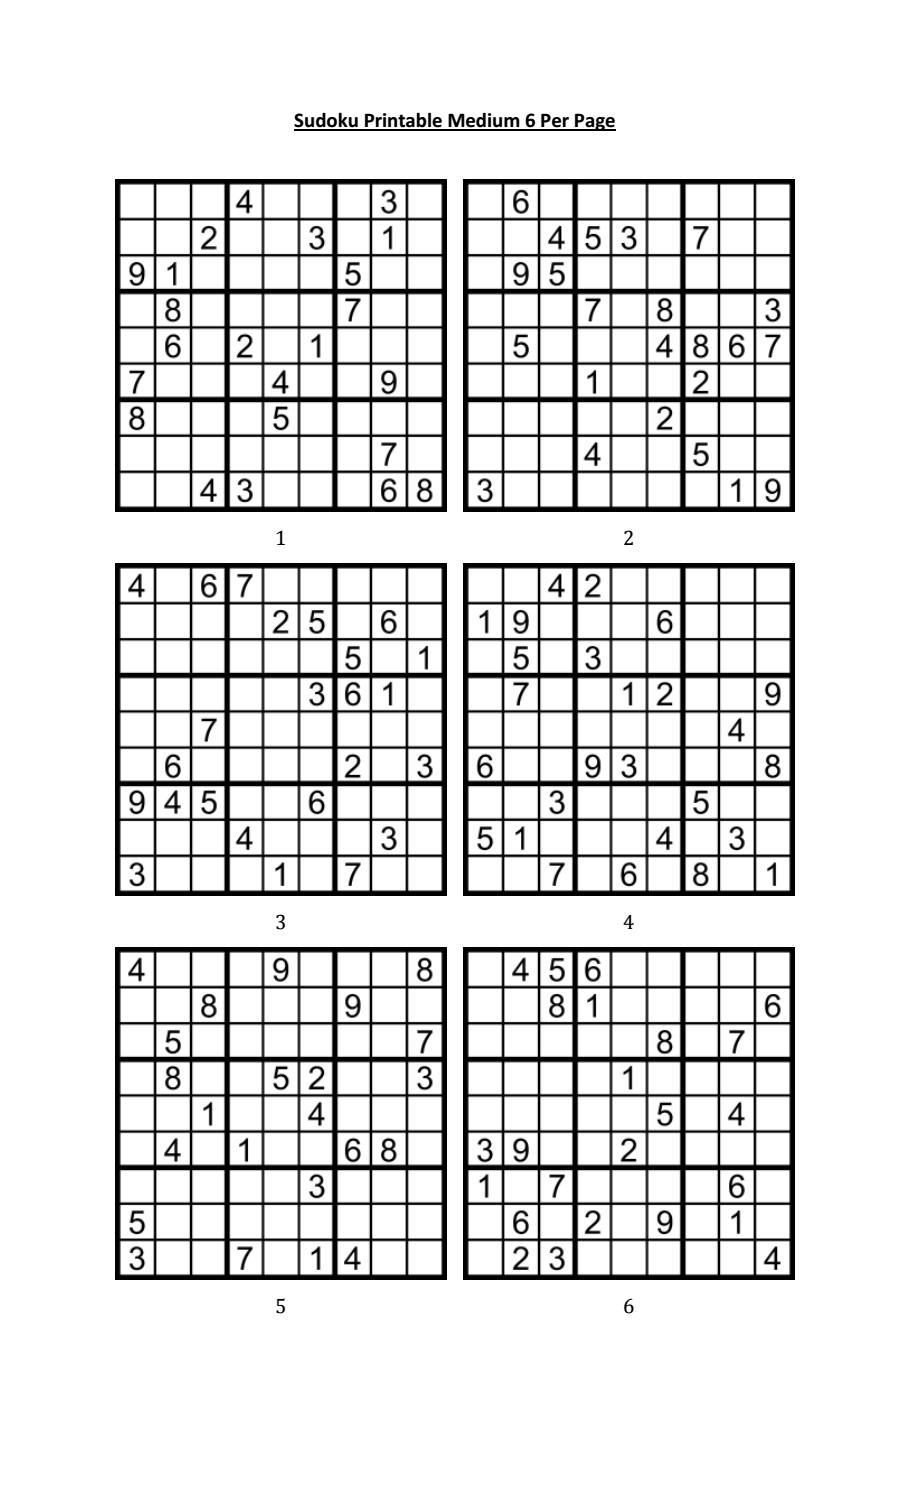 image relating to Printable Sudoku Puzzles 6 Per Page called Sudoku Printable Medium 6 For every Pageaaron Woodyear - Issuu